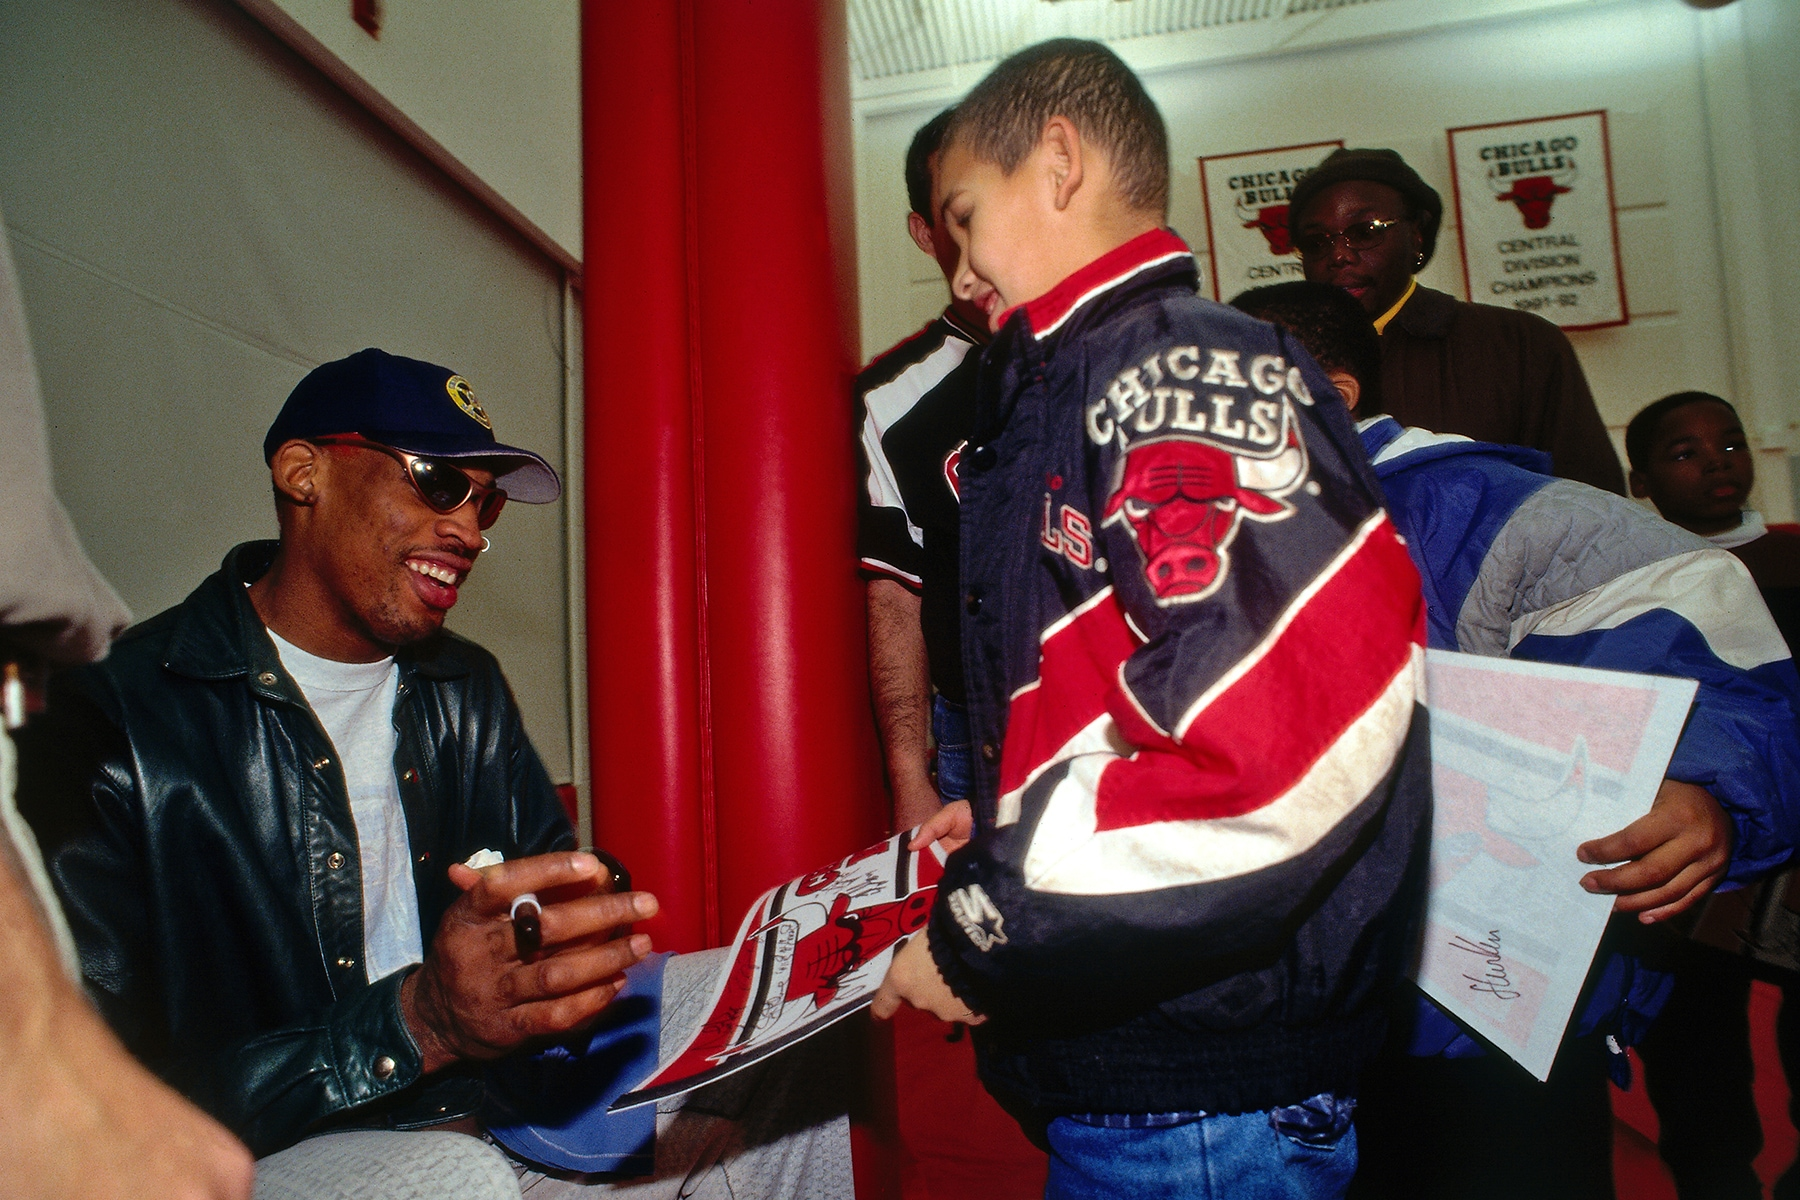 Dennis Rodman signs an autograph for a young fan